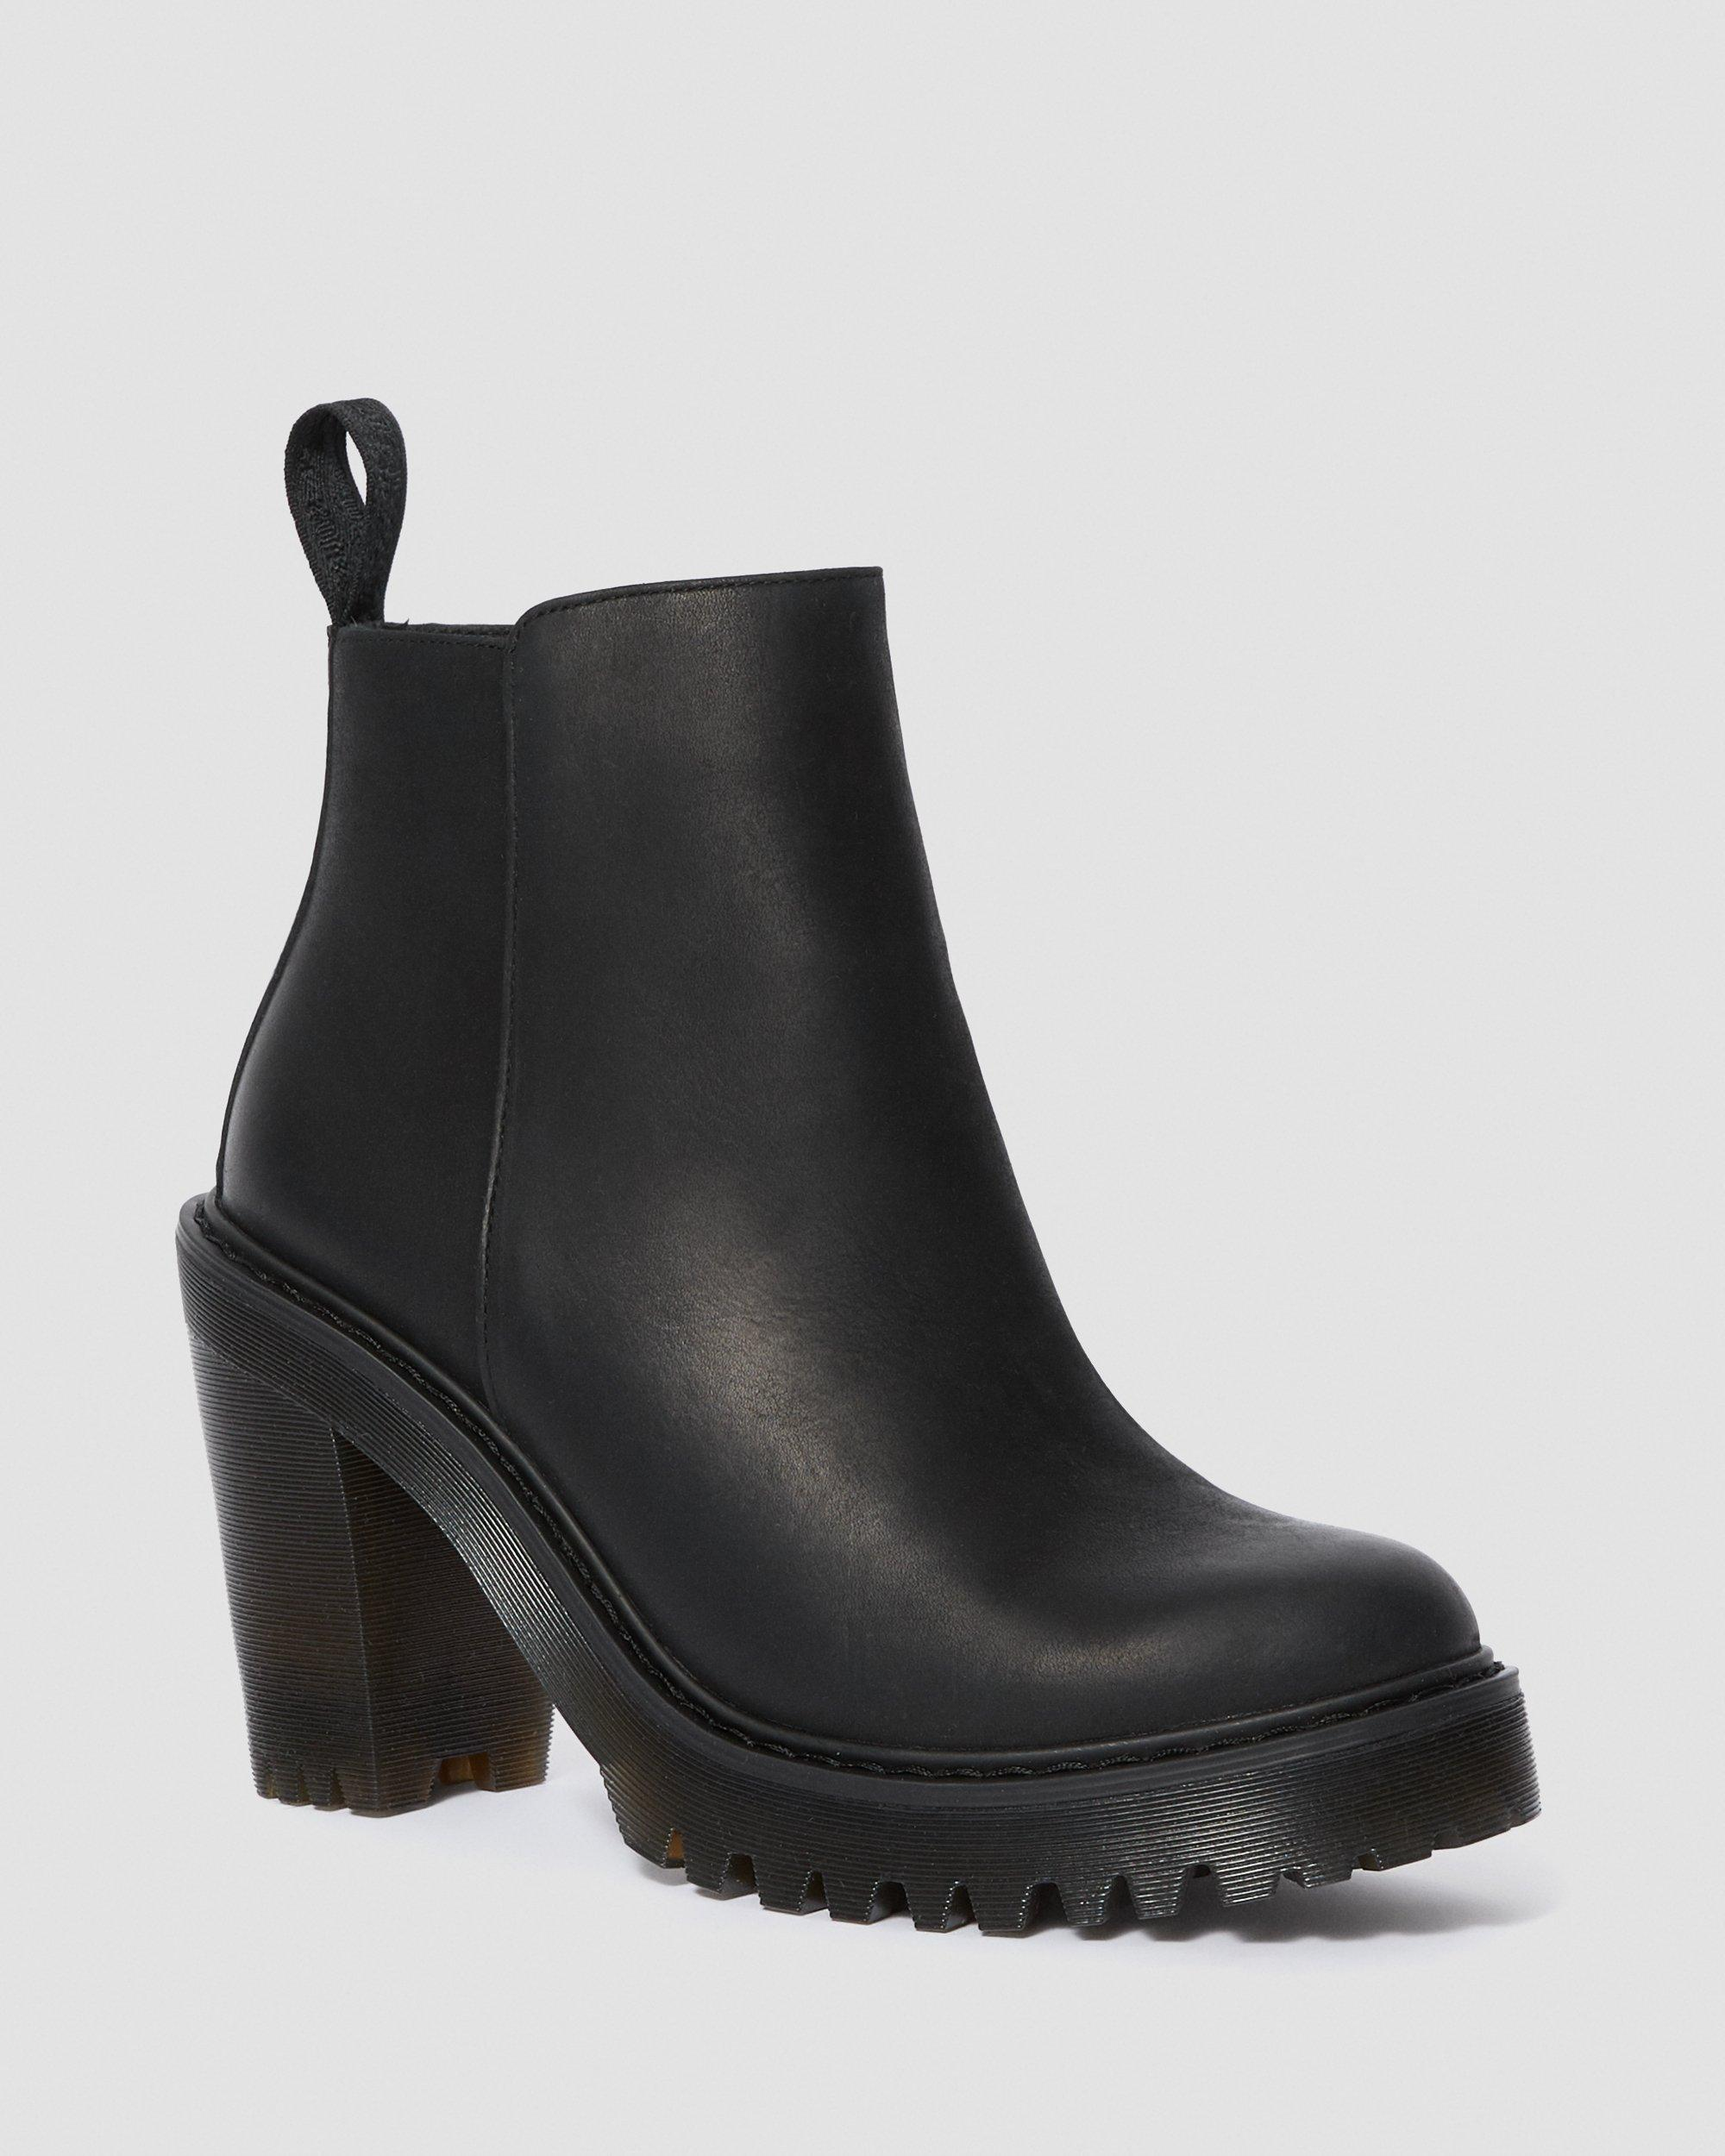 MAGDALENA WOMEN'S LEATHER HEELED